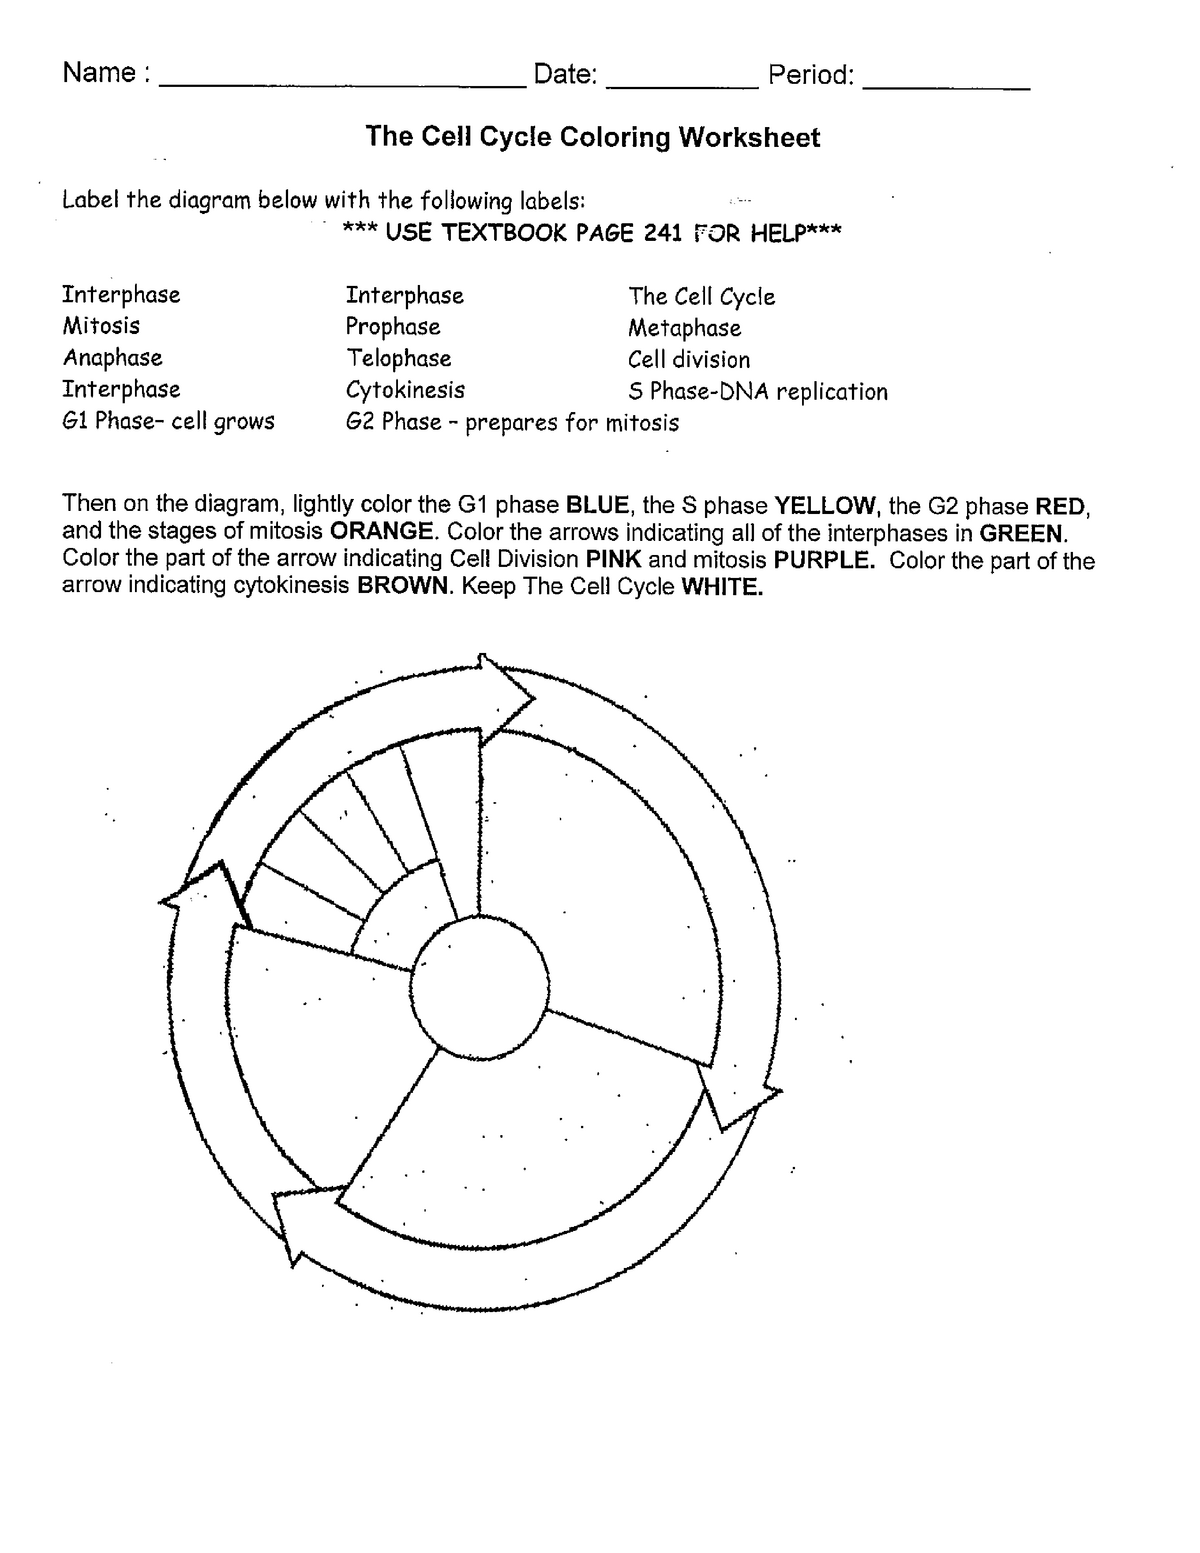 Cell Cycle Coloring Worksheet Geed 10083 Pup Studocu